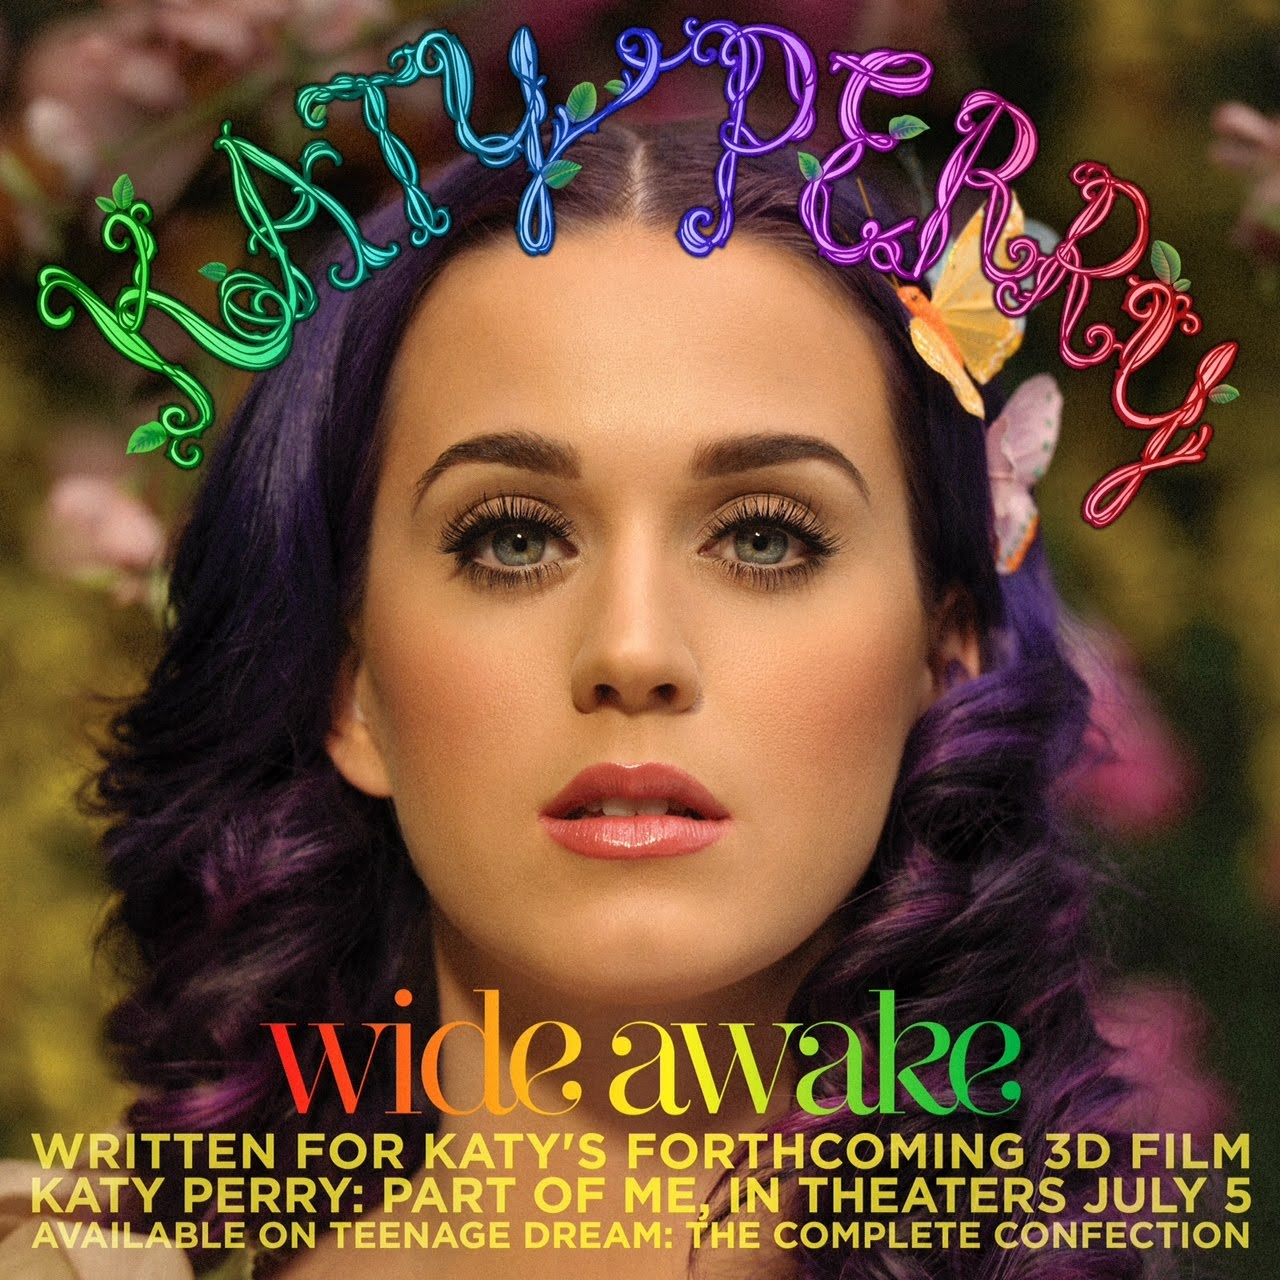 Katy Perry - Wide Awake (Produced by Dr. Luke and Cirkut